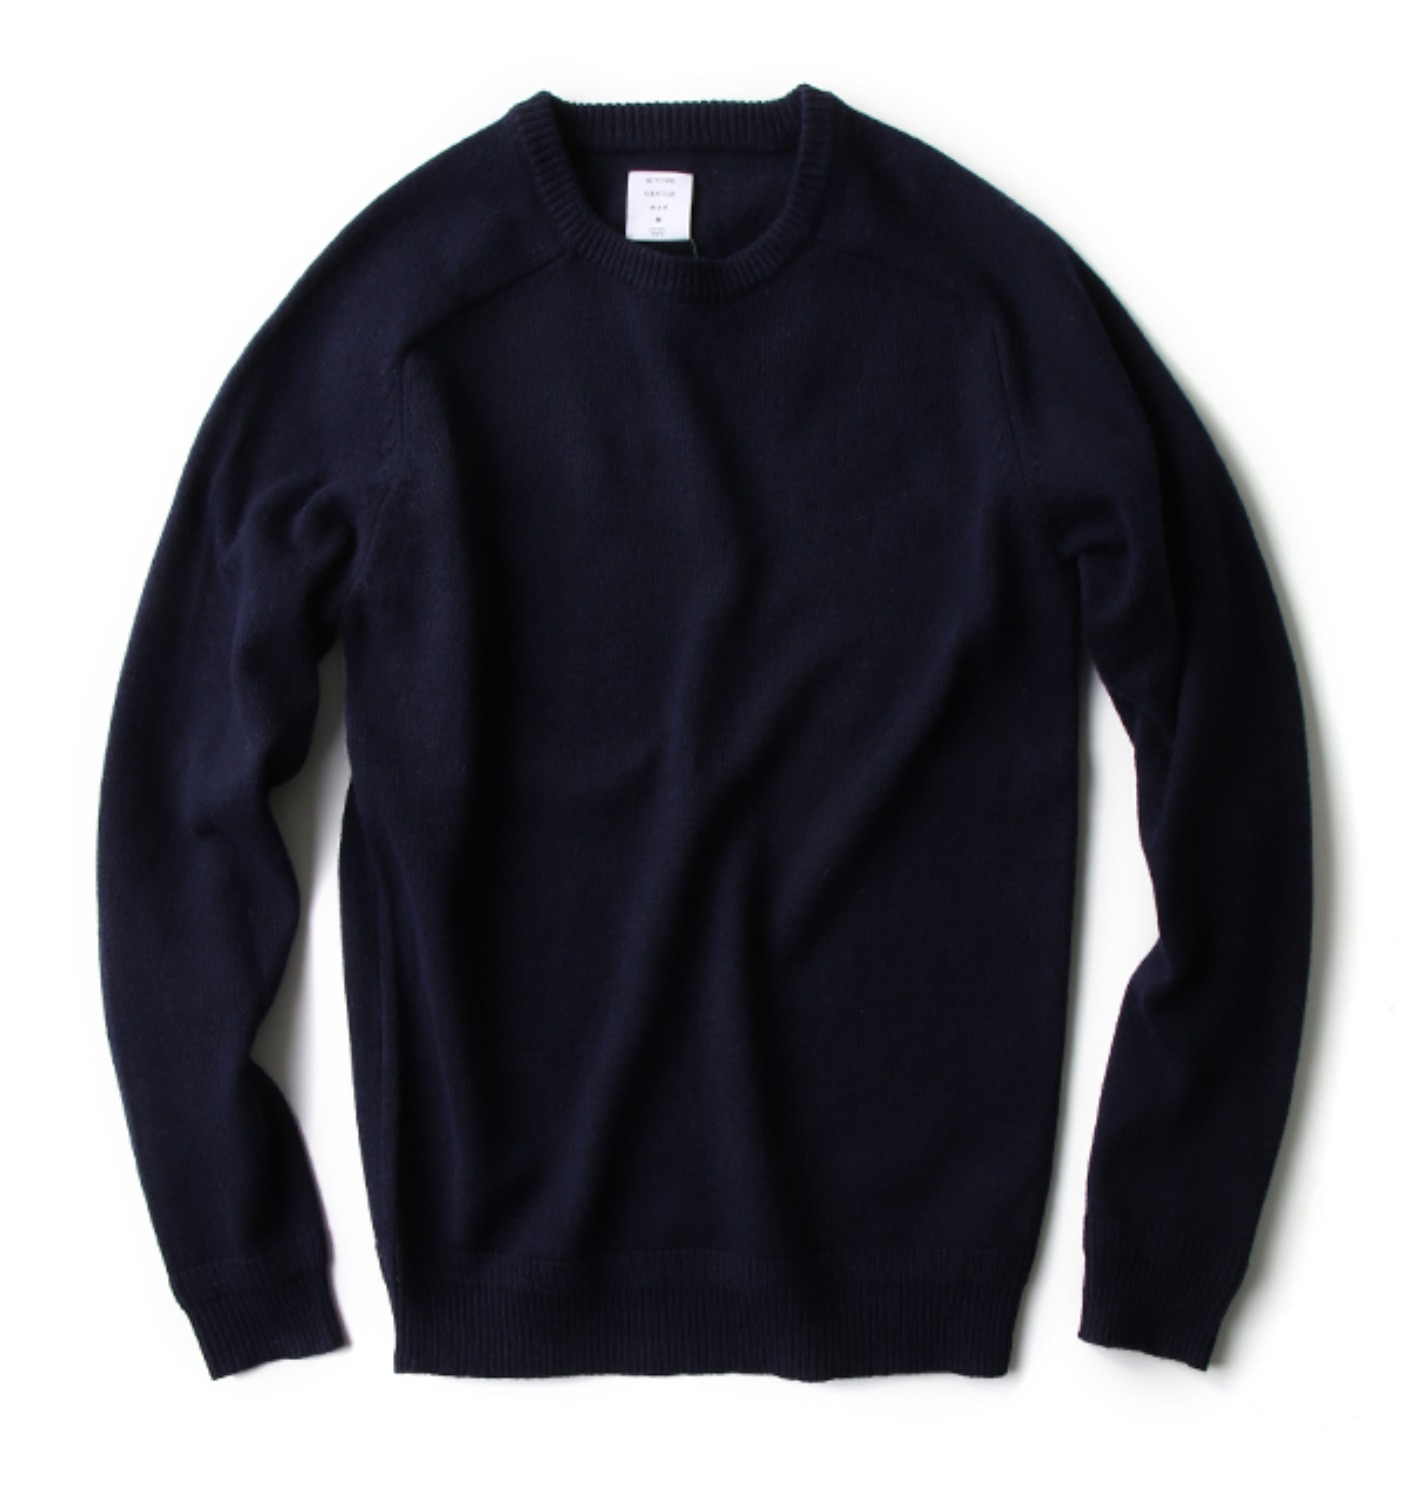 CREW NECK KNIT NAVY(MG-KN01)